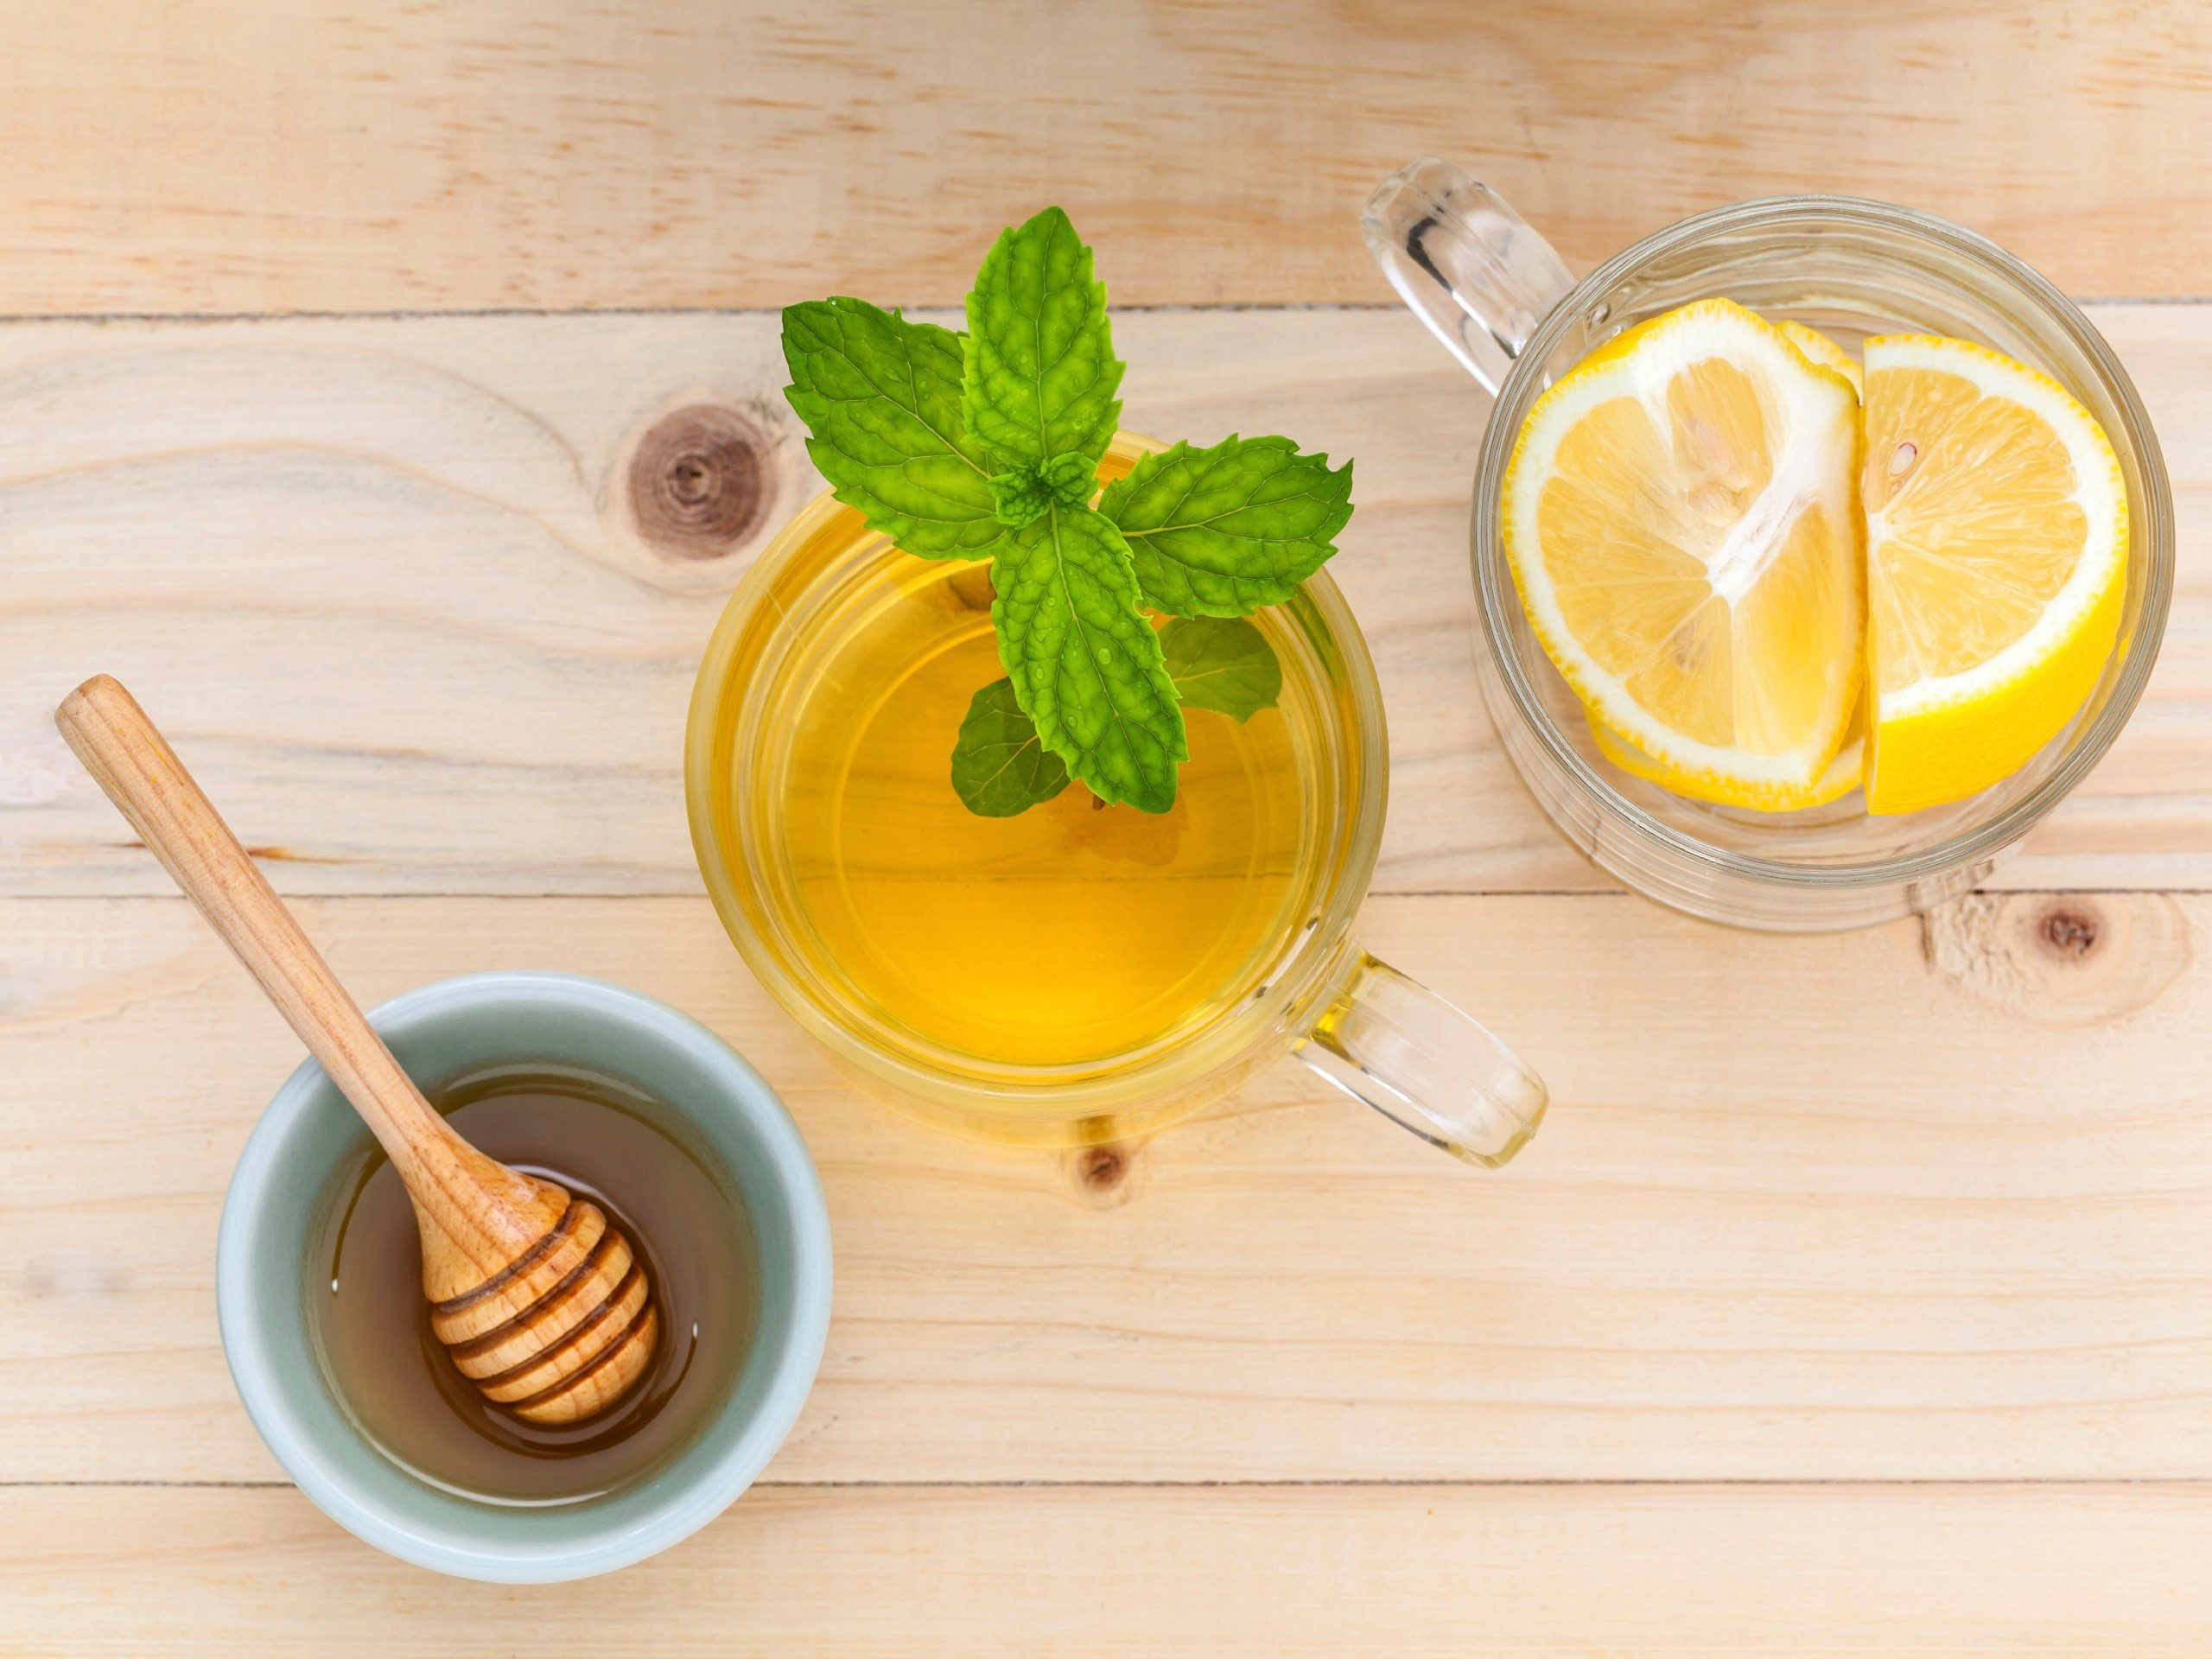 8. Soothe sore throats with honey and lemon